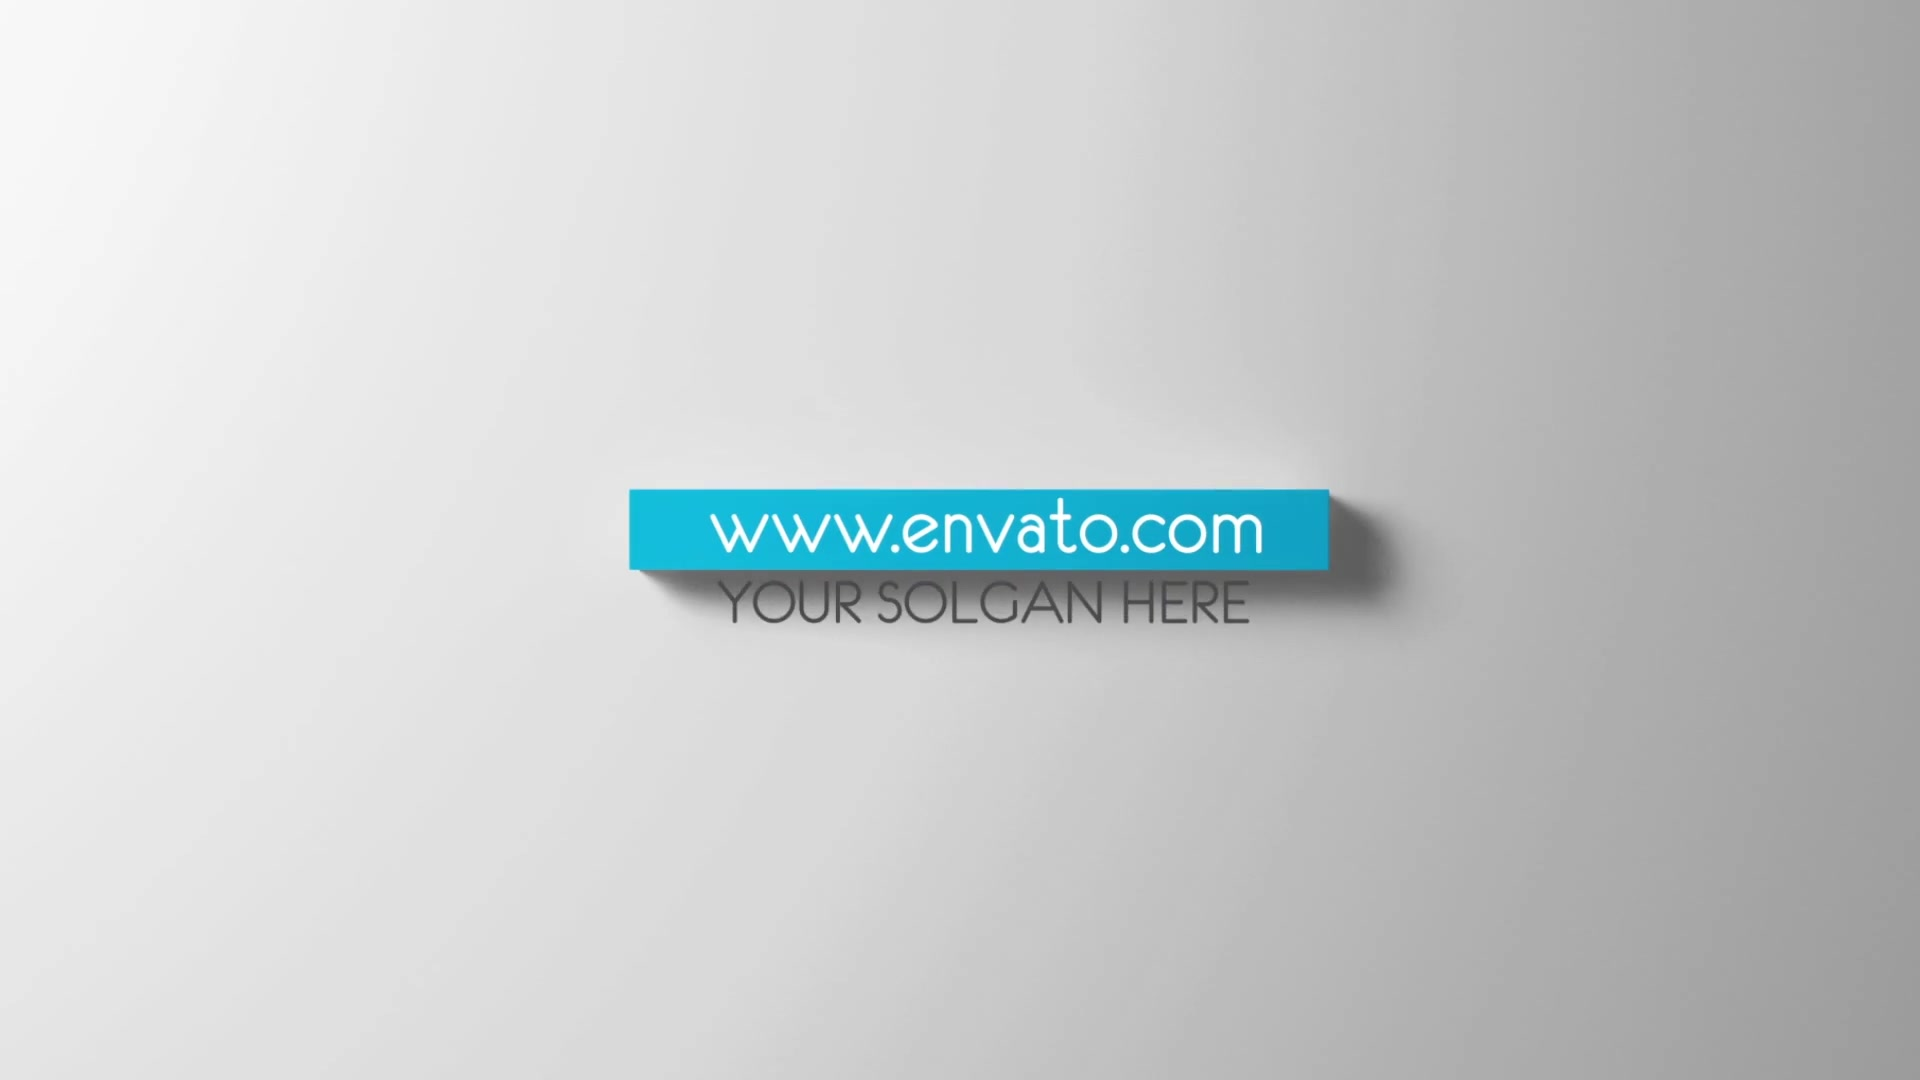 3D Cube Logo Reveal - Download Videohive 13600169